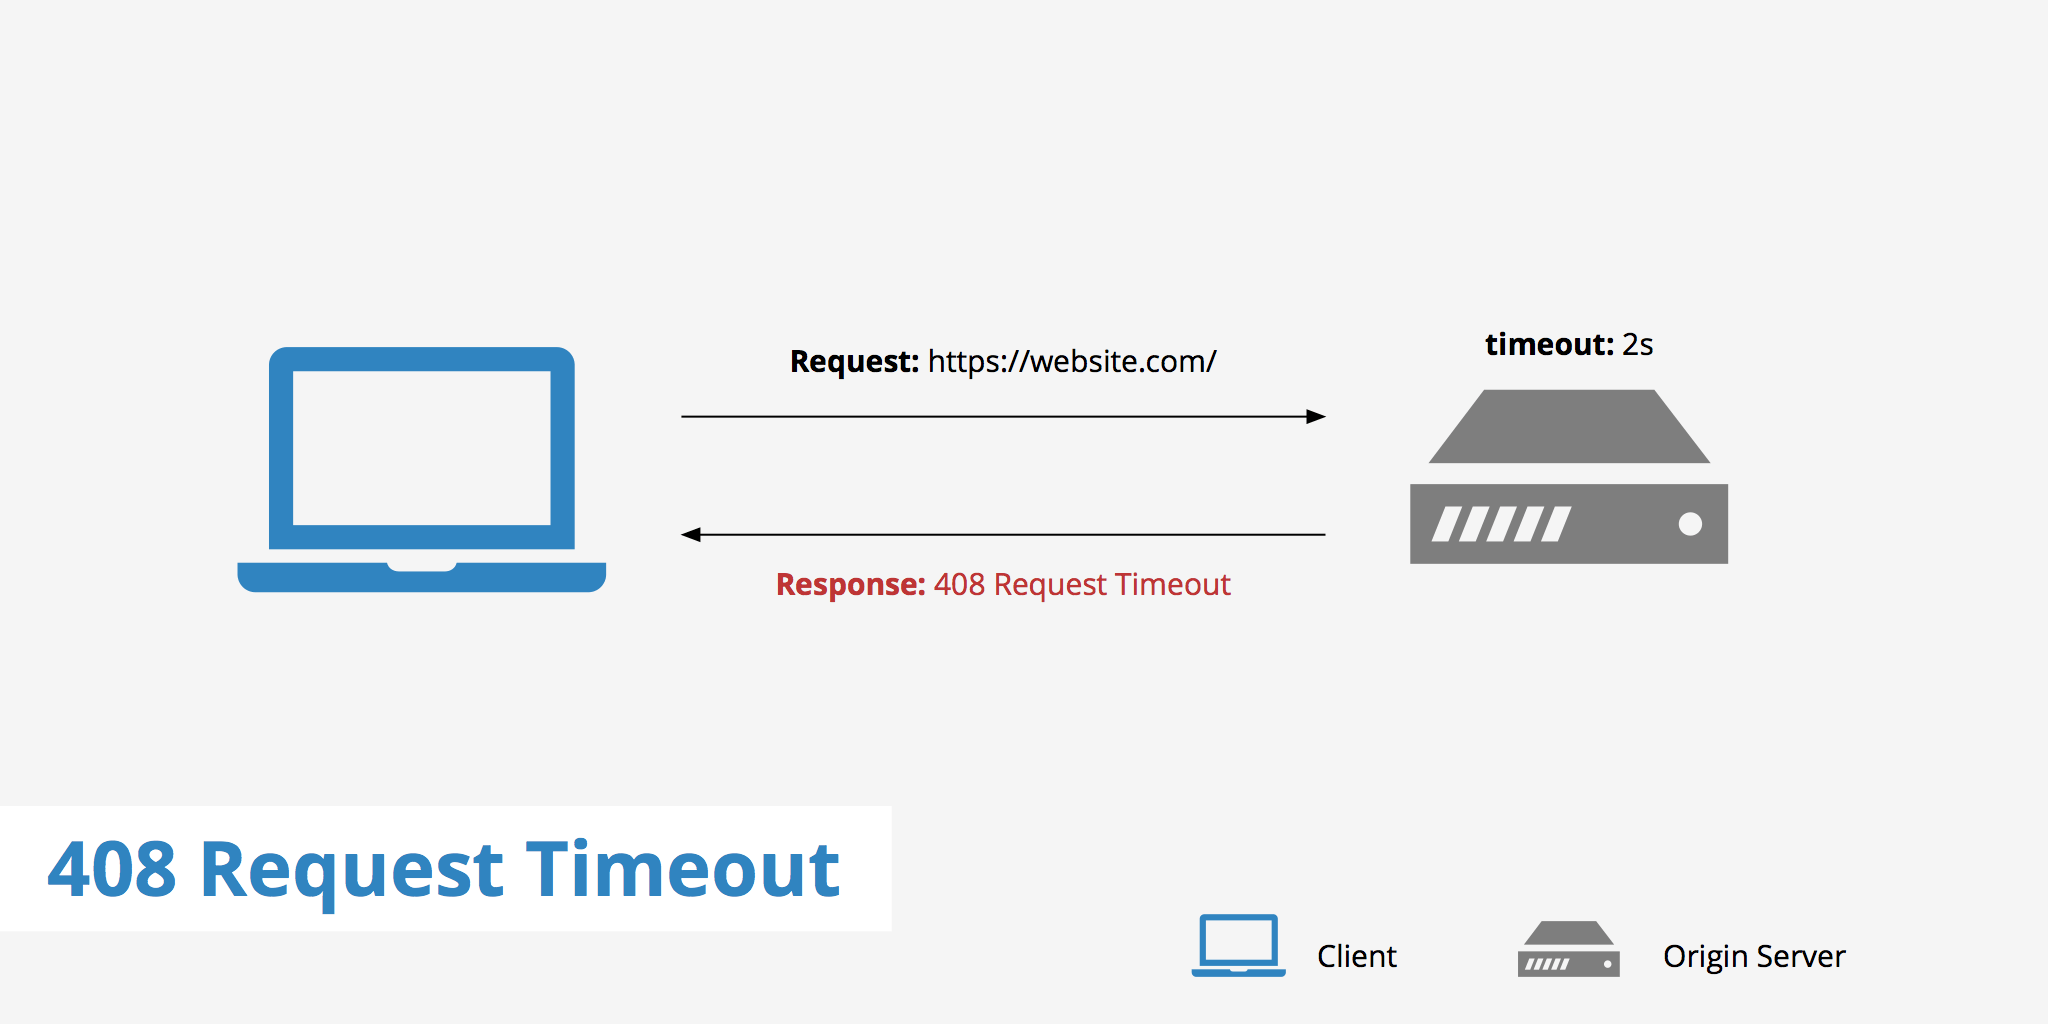 How To Fix A 408 Request Timeout Error